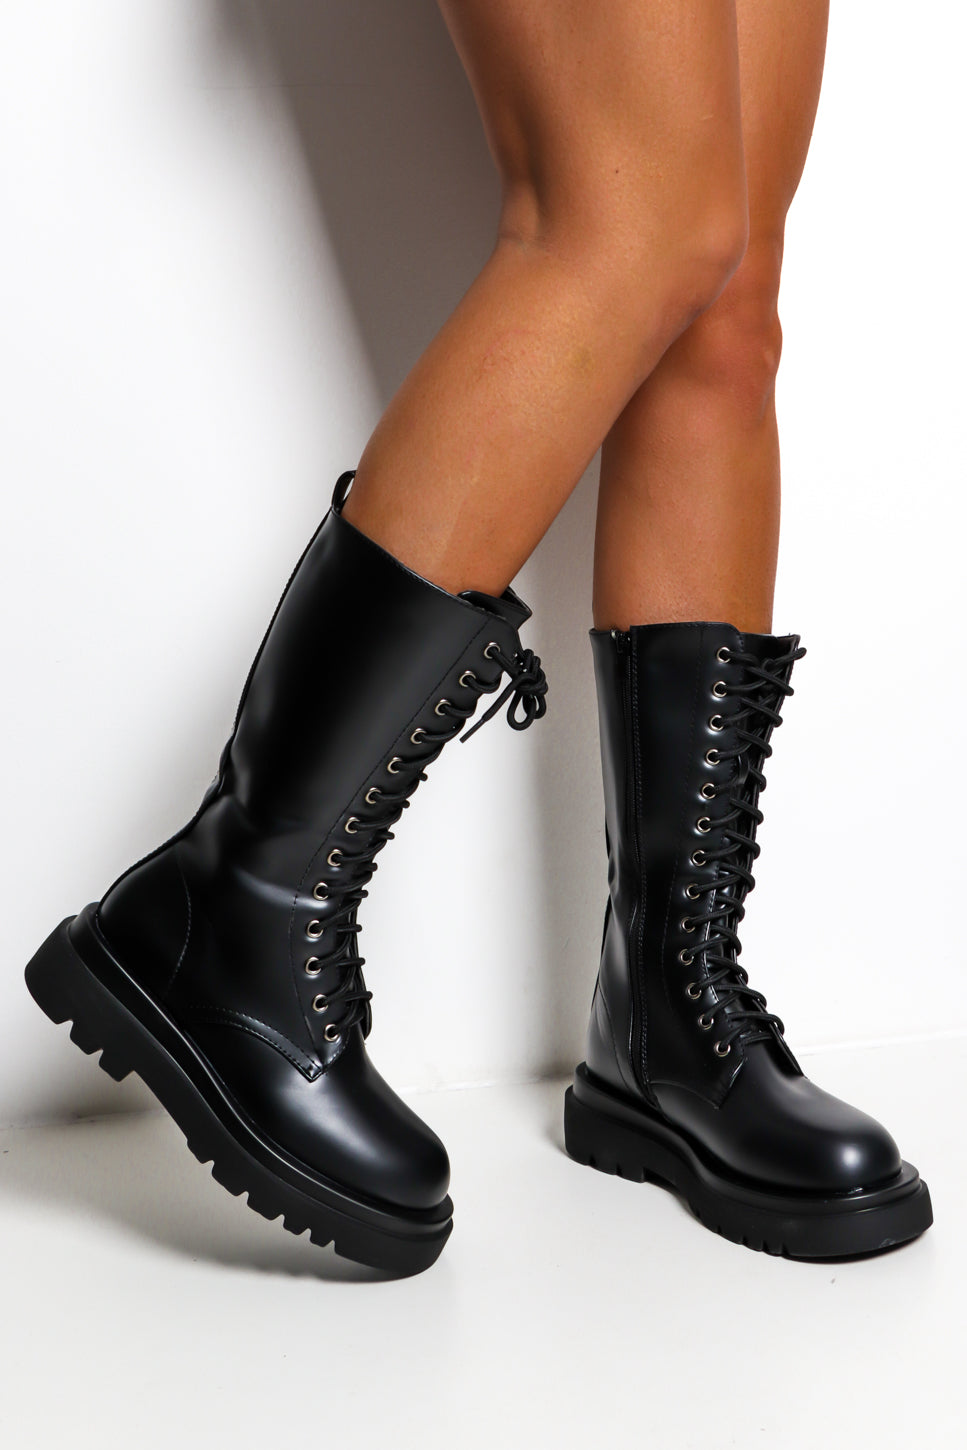 DM Me - Black Lace Up Boot